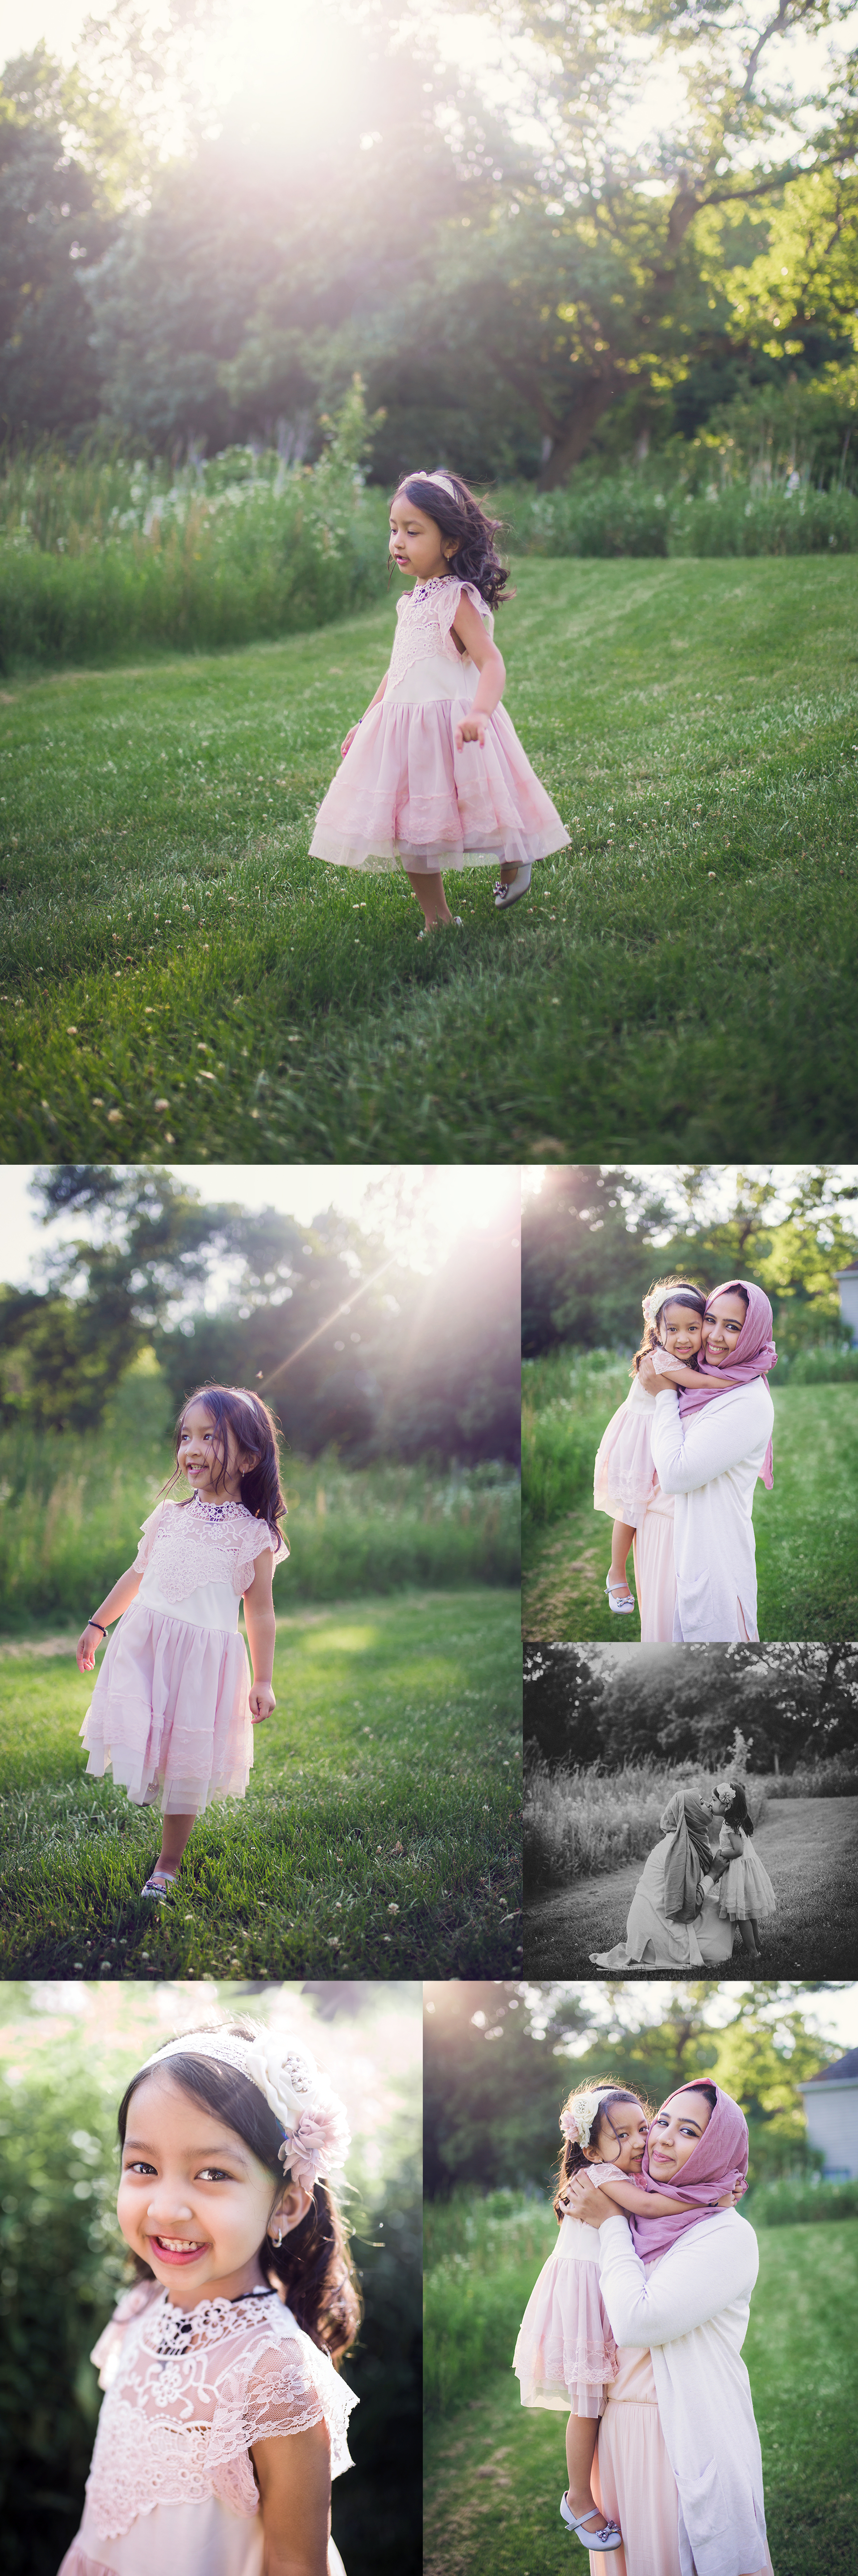 Bethany Birnie Minneapolis Minnesota Family and Wedding Photographer